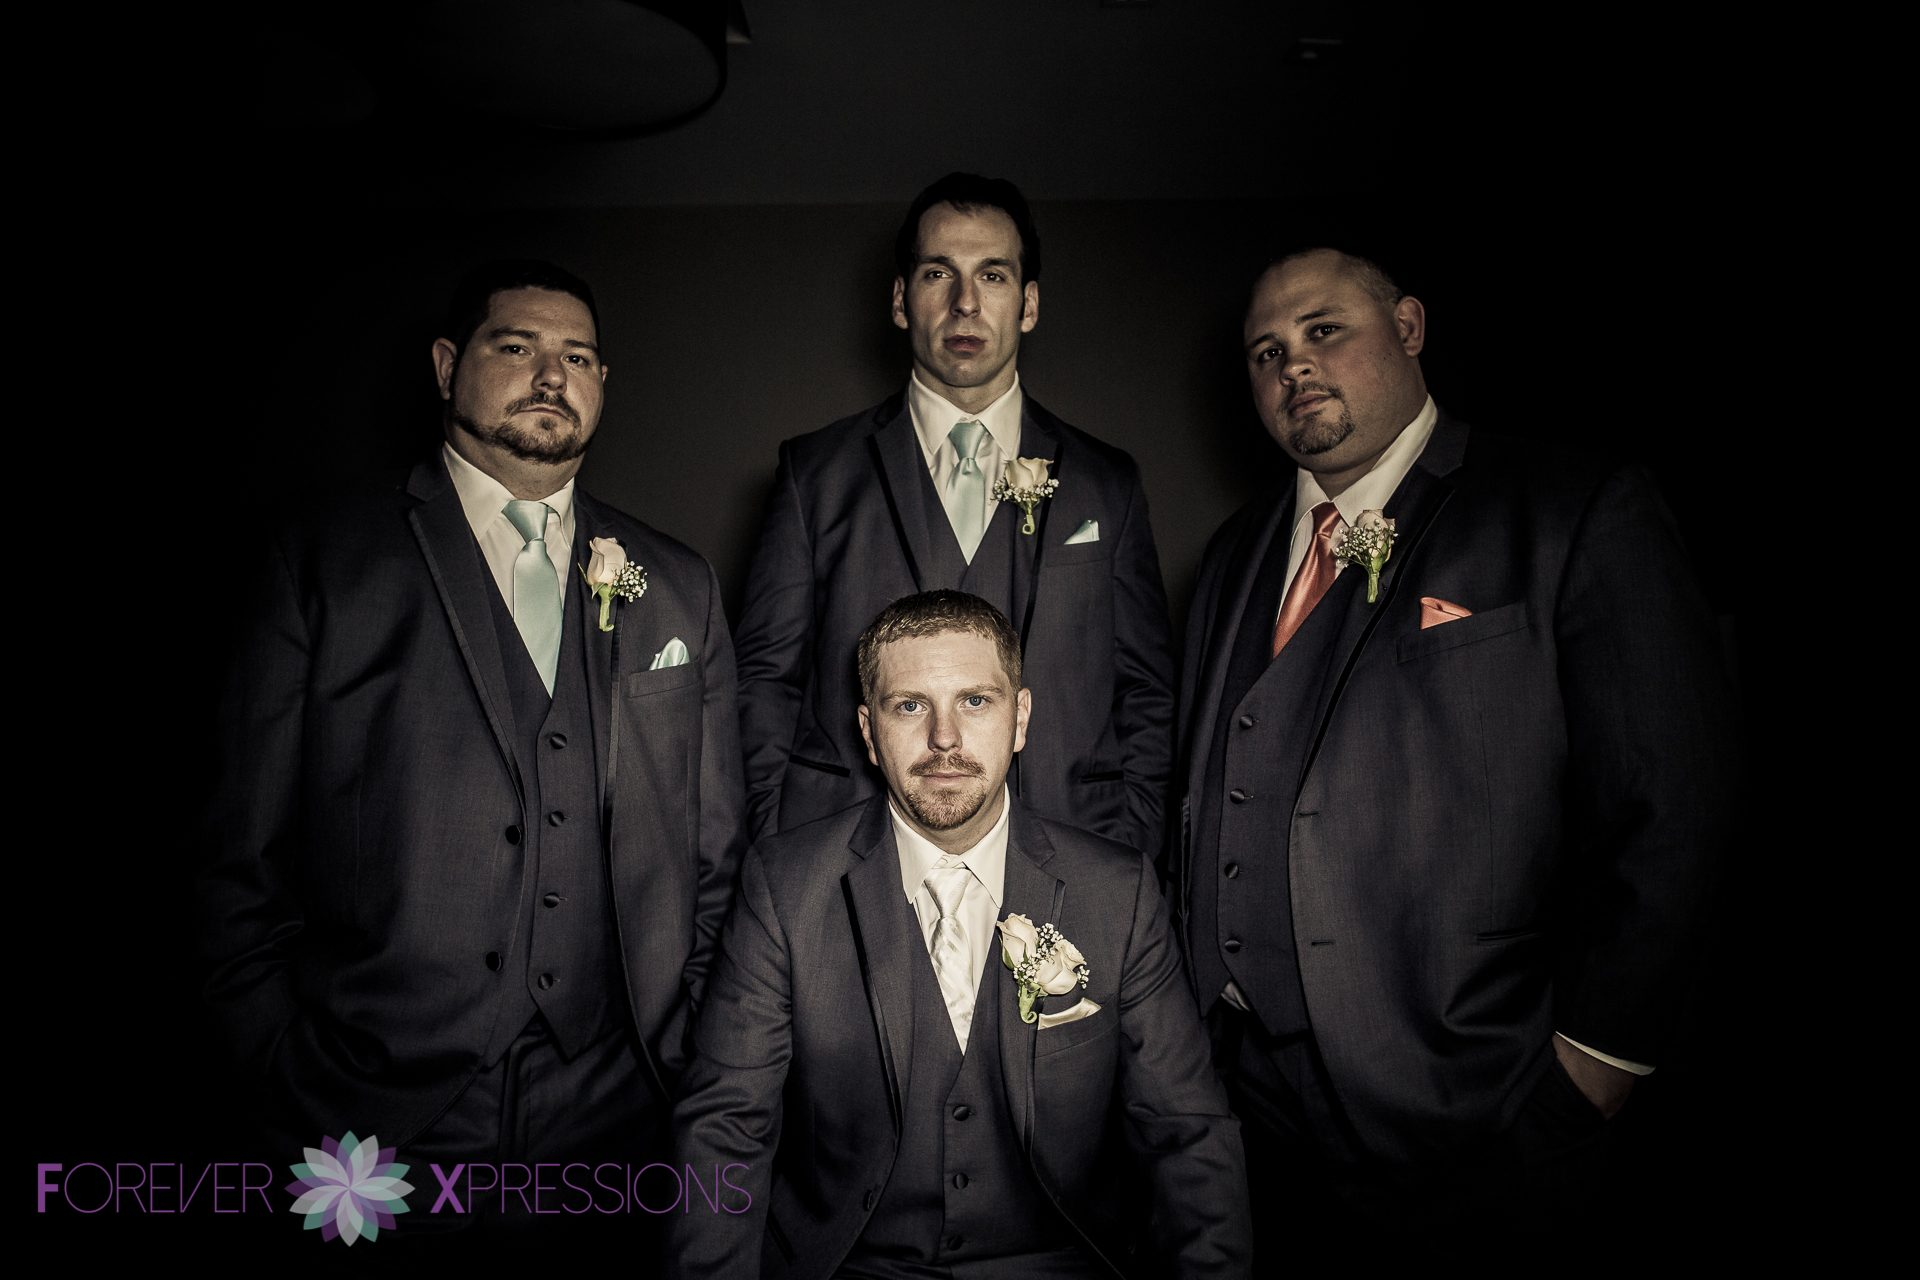 Groomsmen Dark Photo